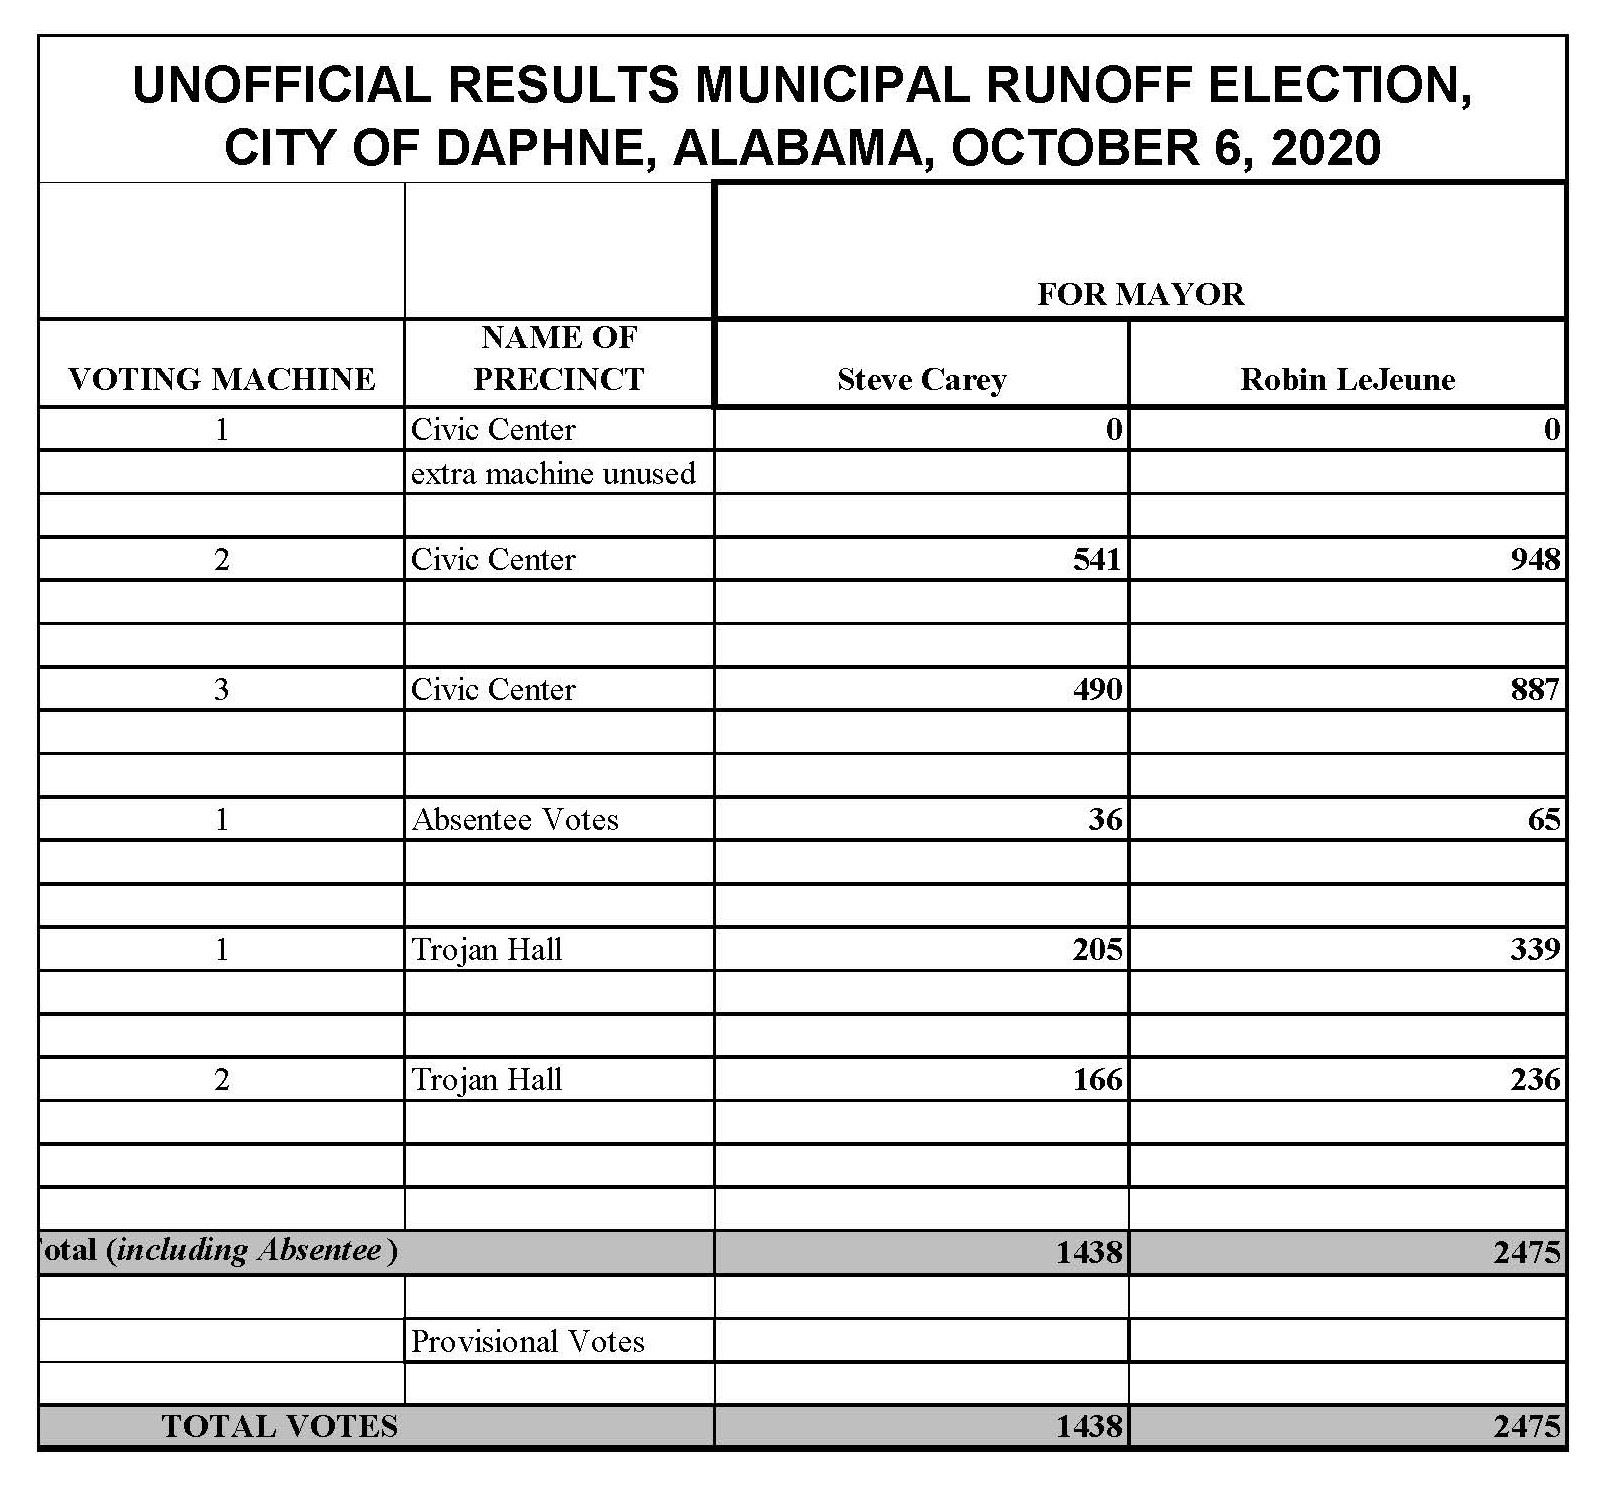 Daphne Runoff unofficial results